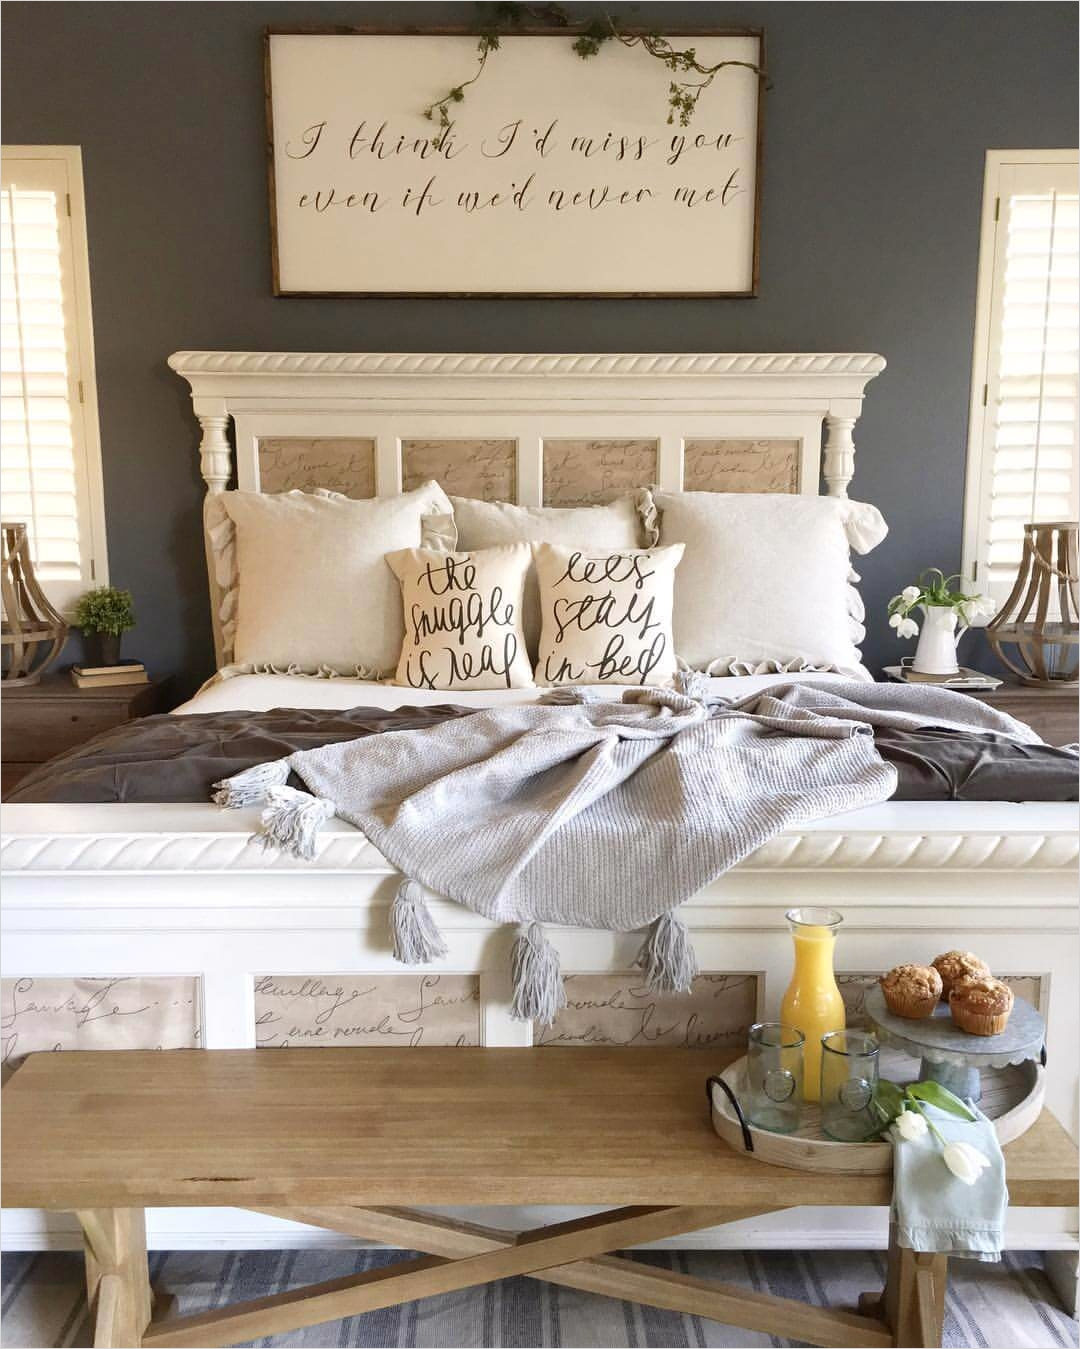 43 Stunning Country Farmhouse Bedroom Ideas 13 39 Best Farmhouse Bedroom Design and Decor Ideas for 2017 3